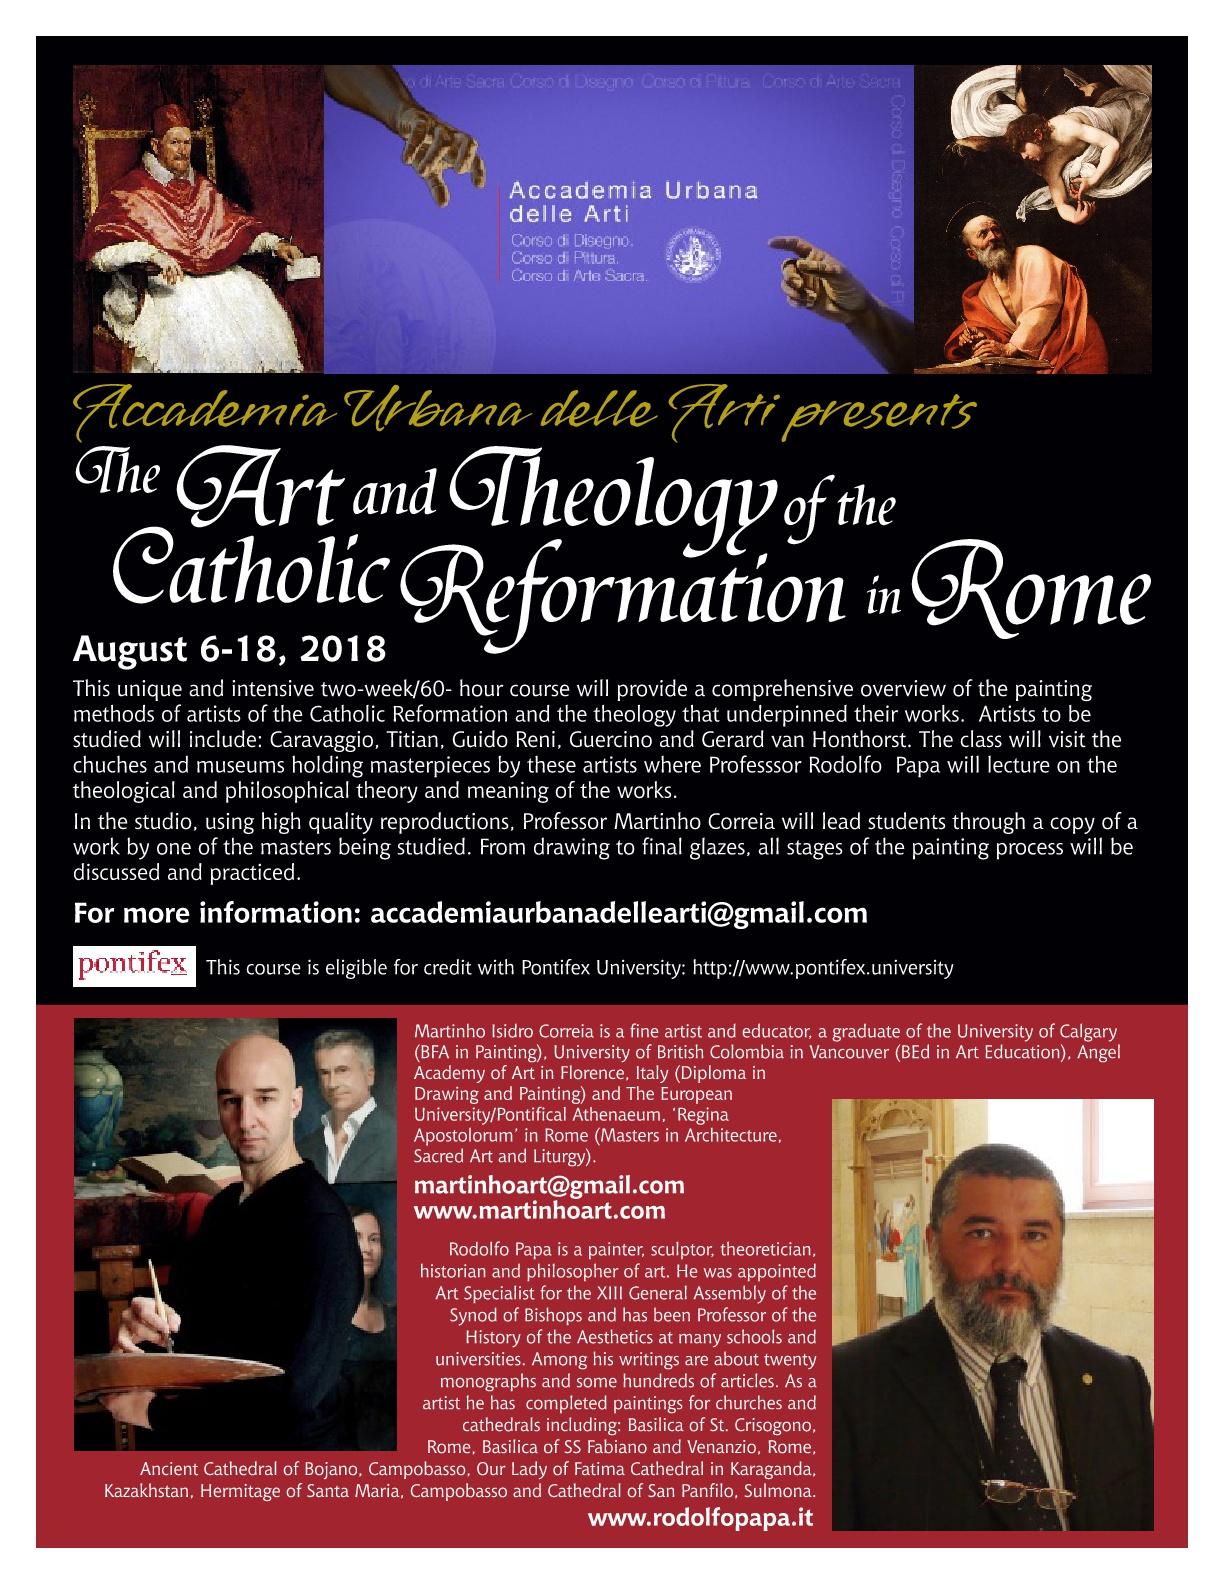 WORKSHOP IN ROME AUGUST 6-17 2018